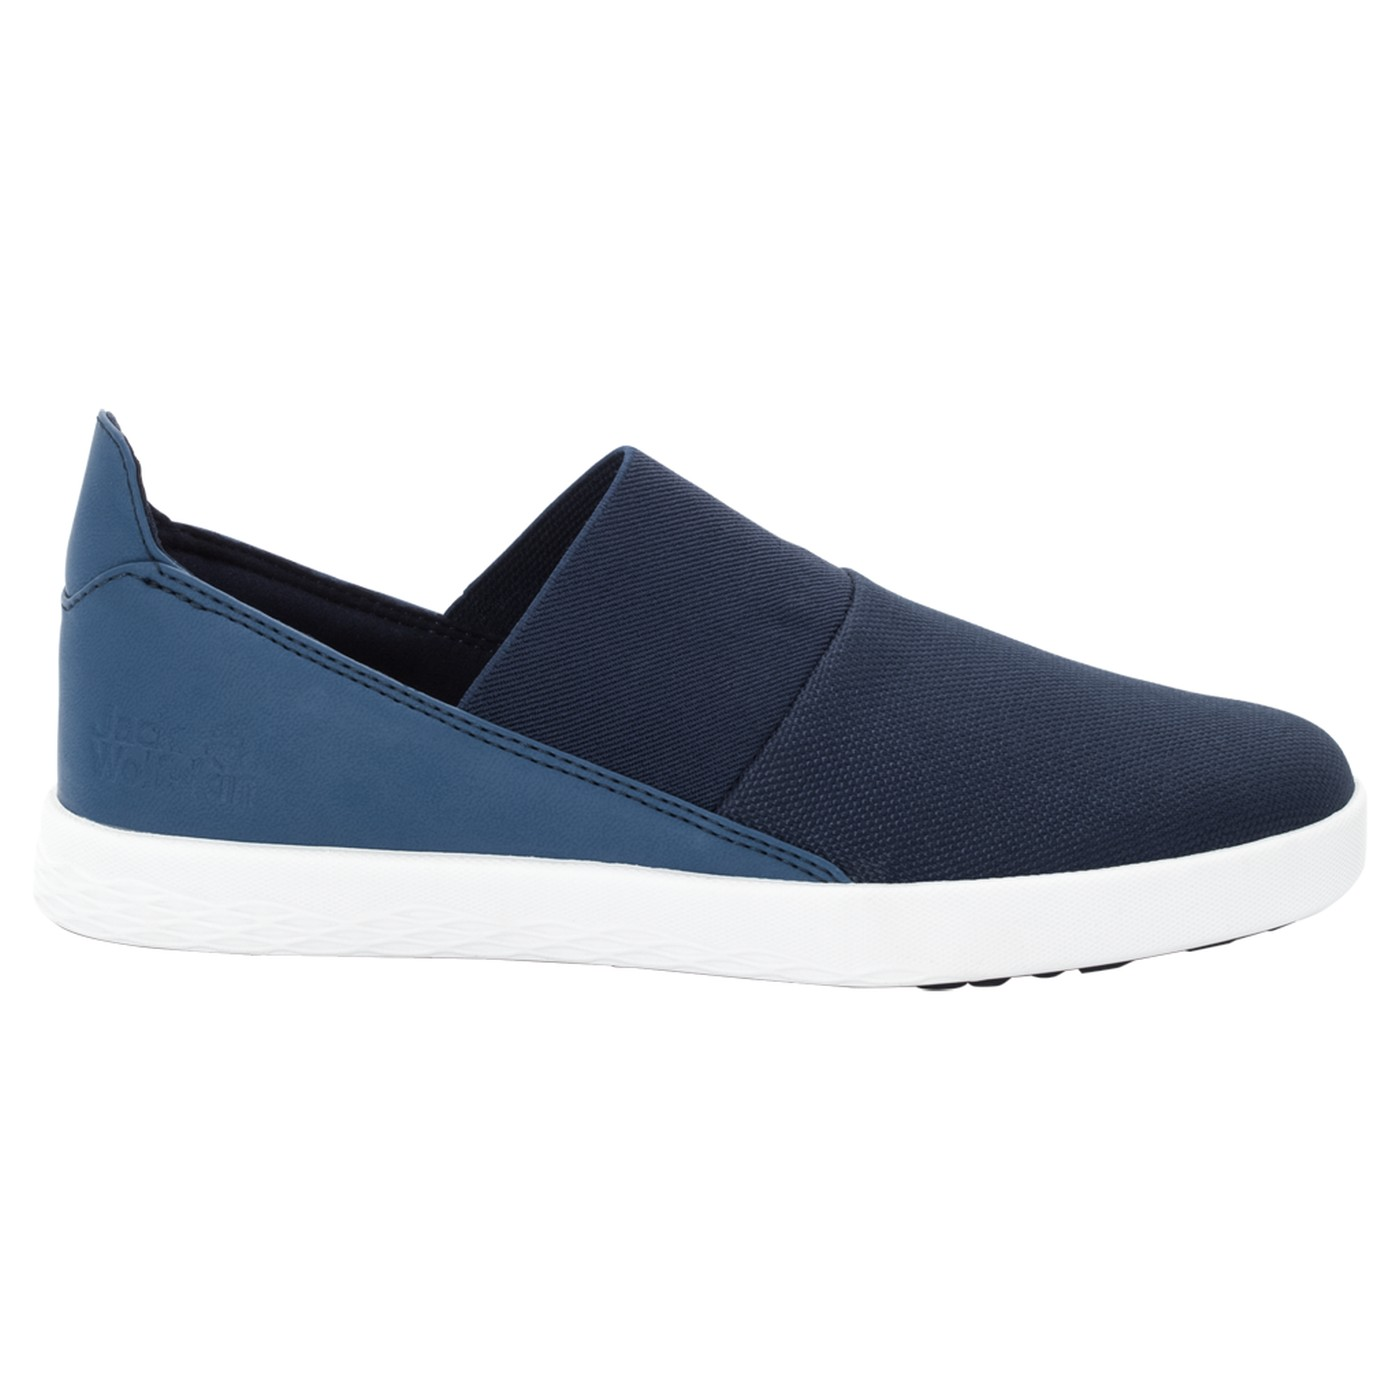 new appearance newest exquisite style Jack Wolfskin Auckland Slipper Low W midnight blue - en